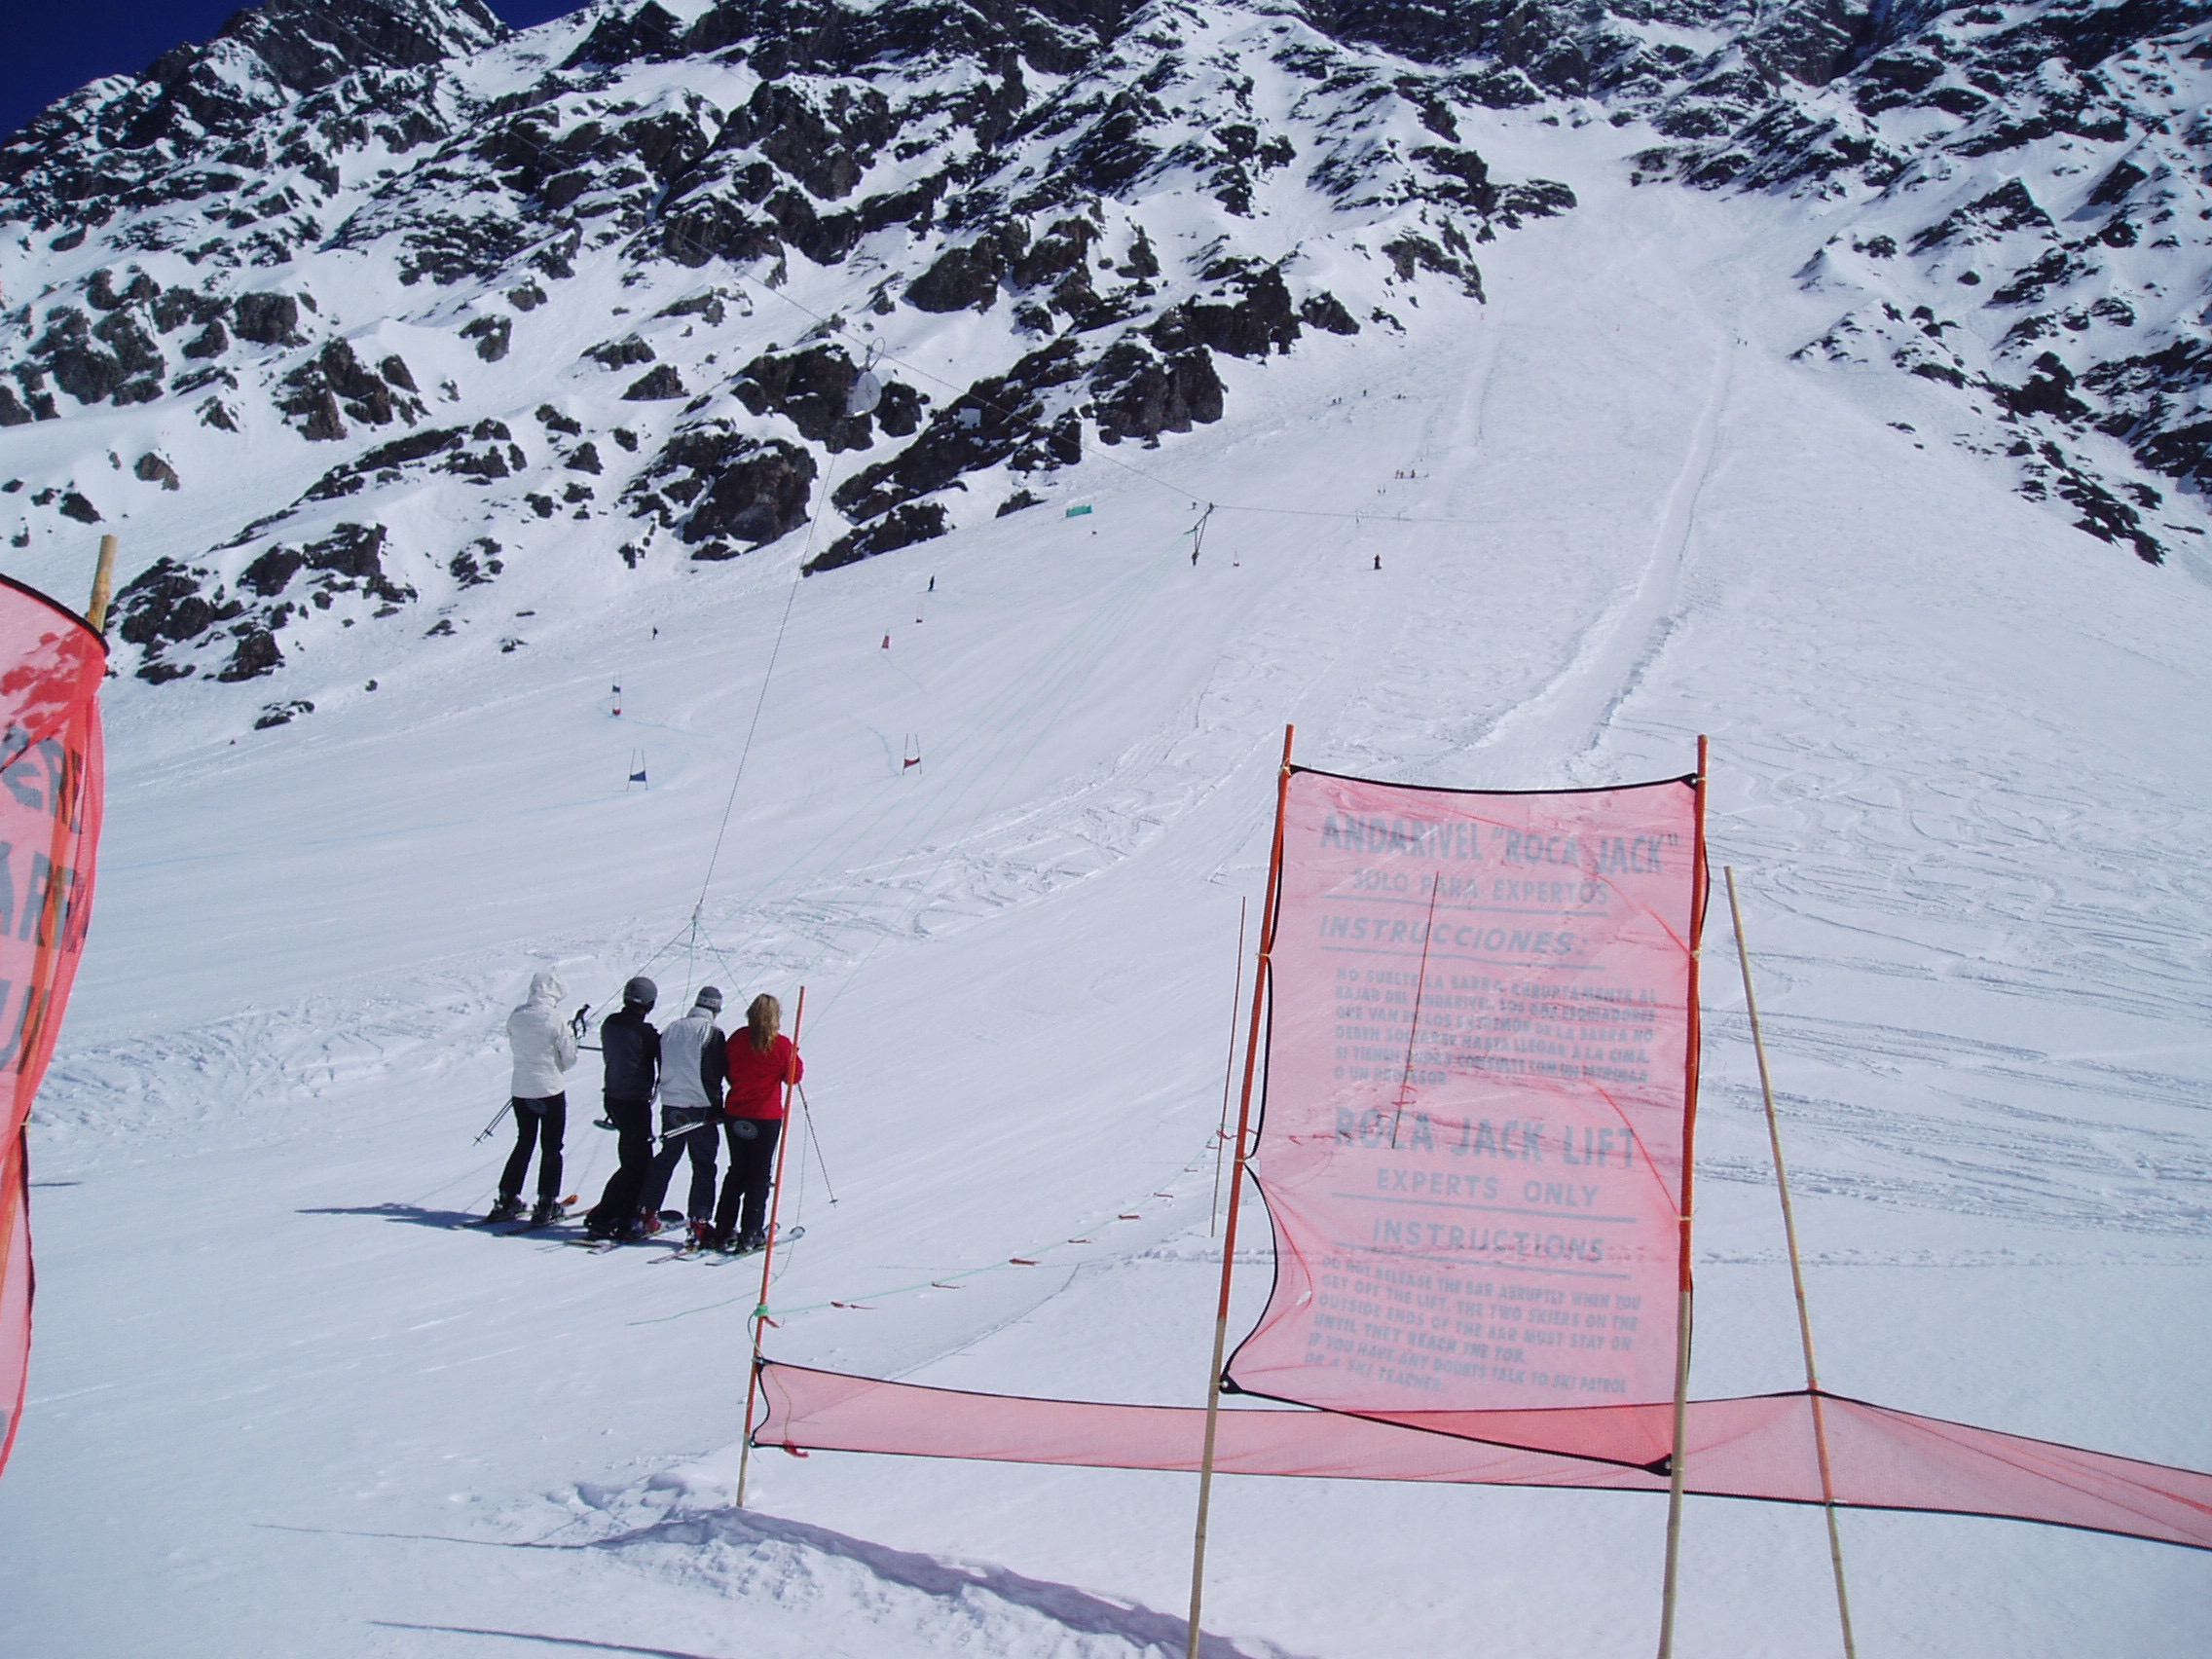 """The infamous """"Roca Jack"""" 5 person platter lift at Portillo is designed to allow avalanches to effectively pass underneath it from the massive terrain above"""